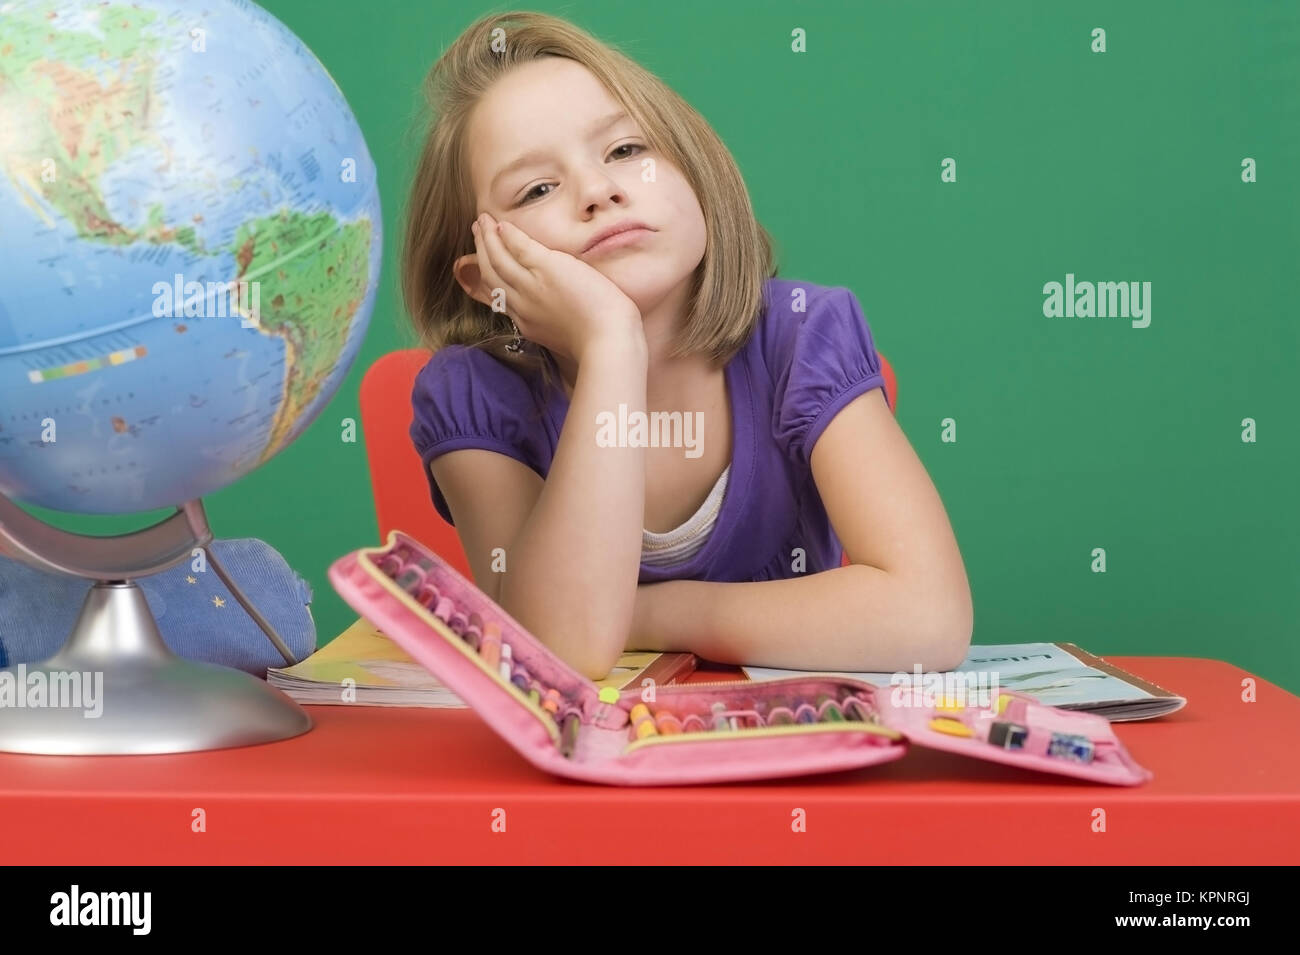 Model release , Lernfaules Maedchen, Symbolbild - girl doesn't want to learn Stock Photo